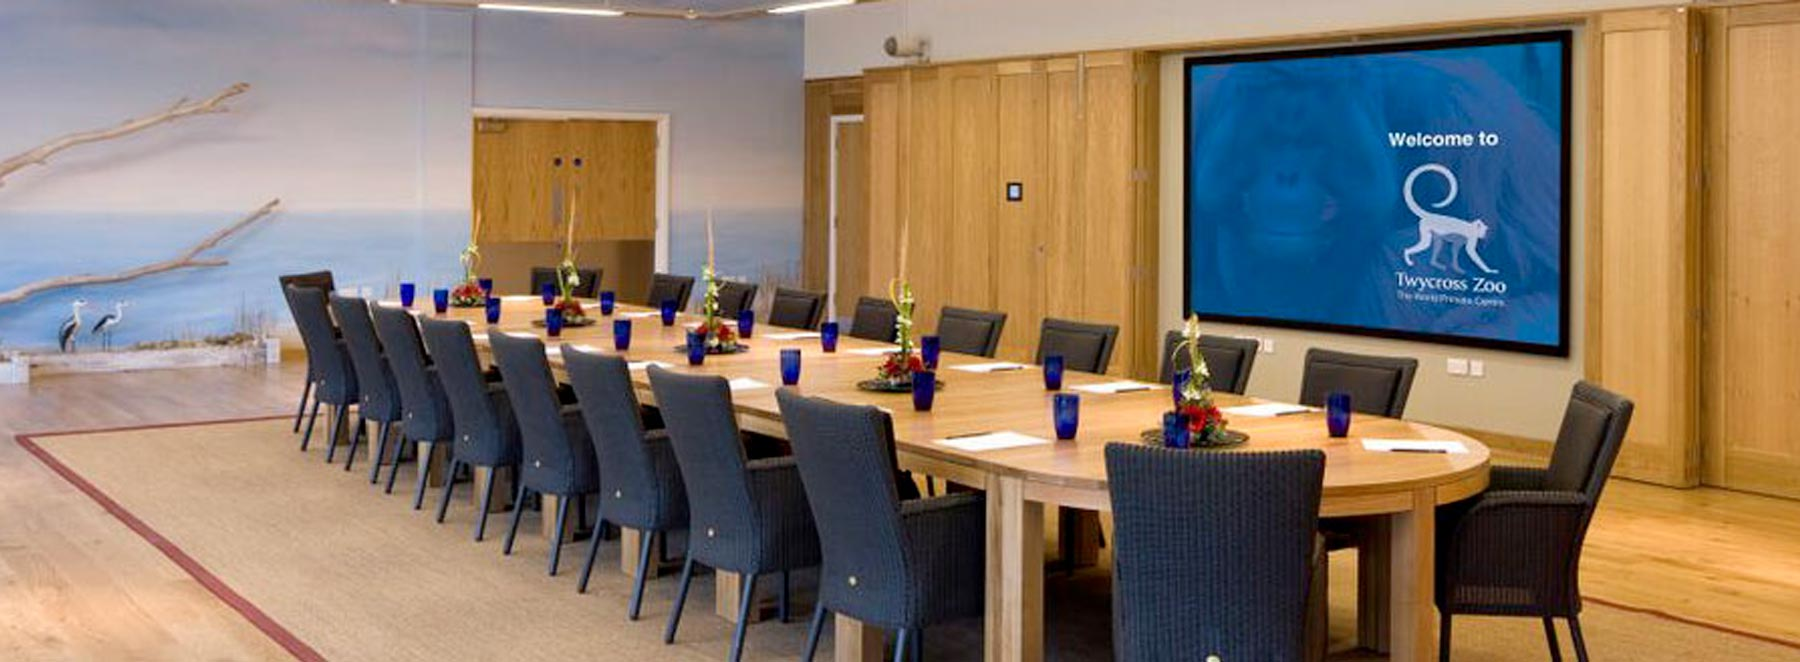 Board Room Technology Installed